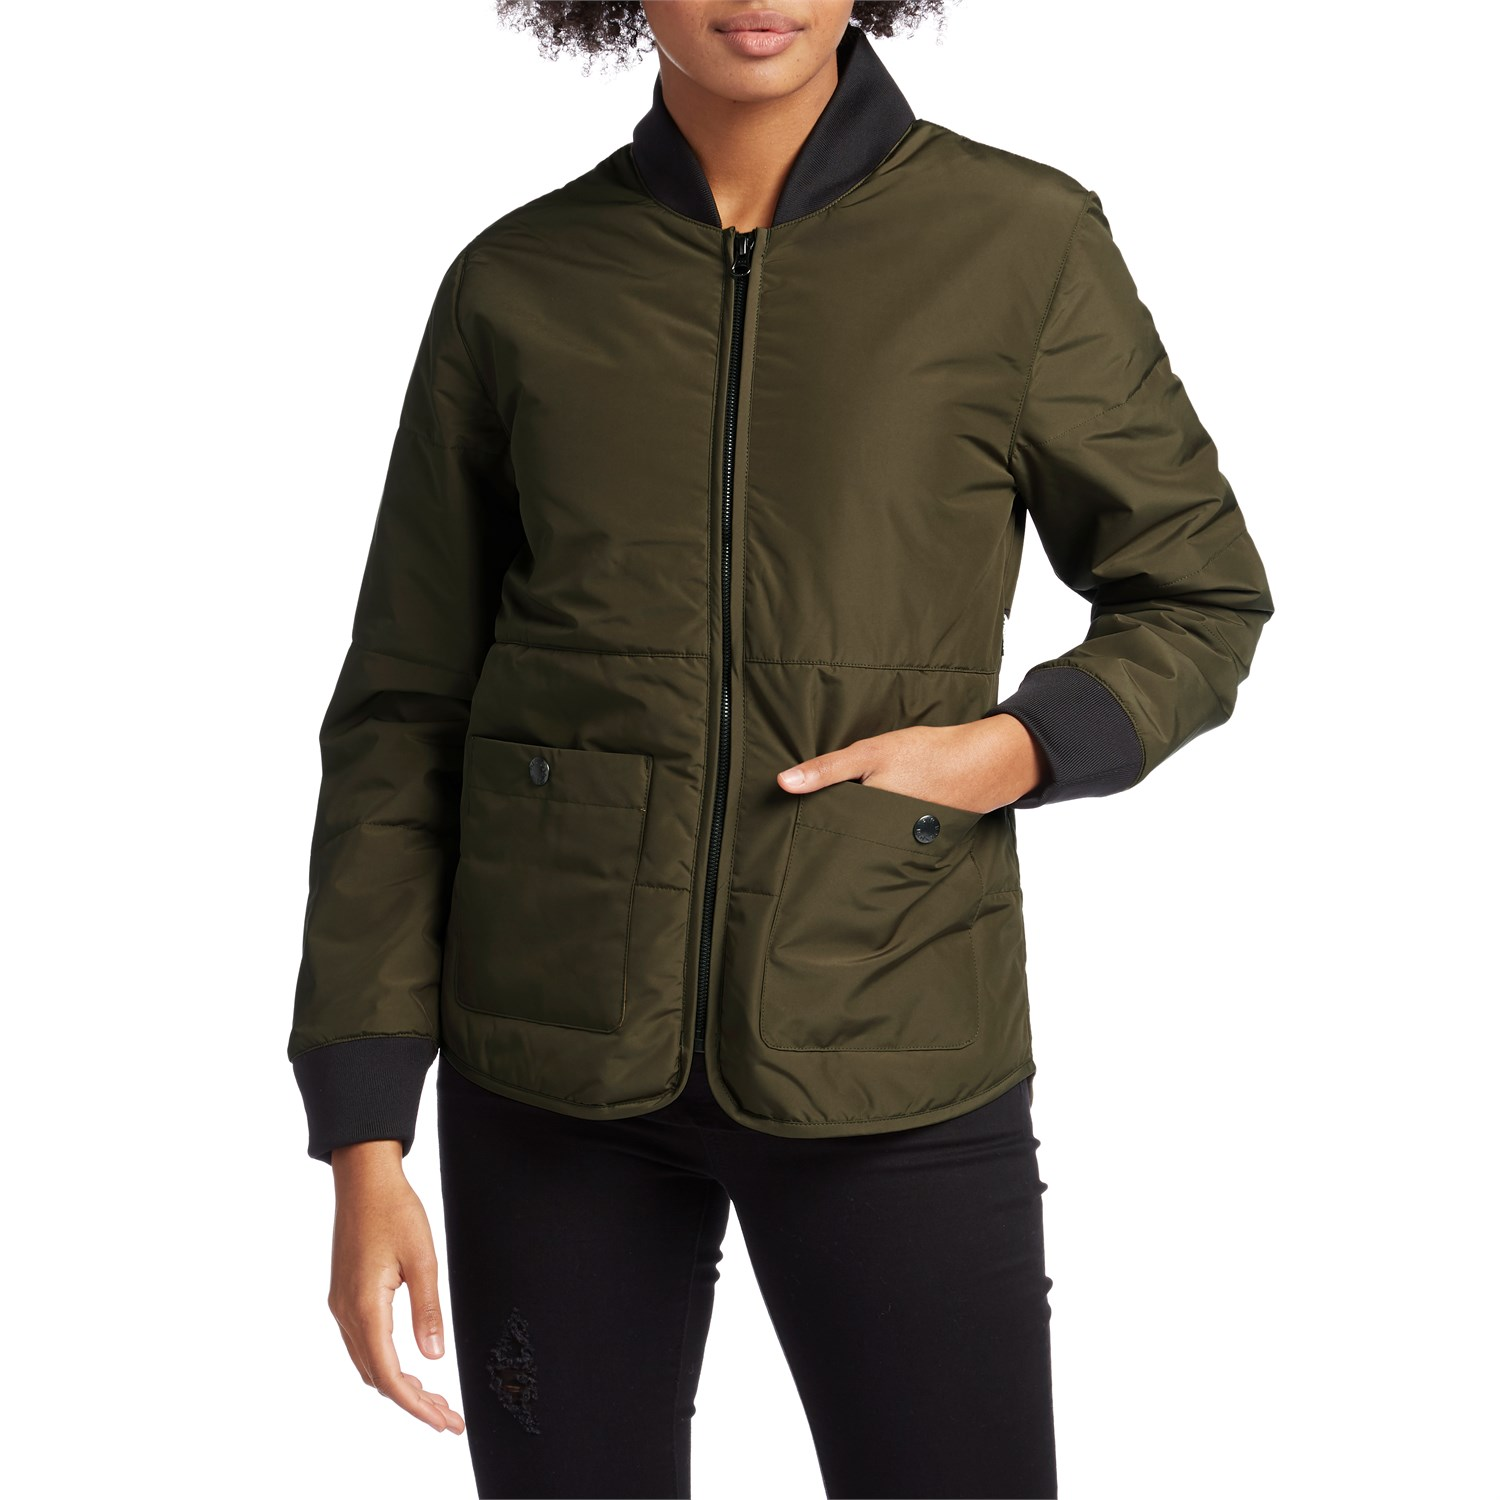 Airblaster Bomb Air Jacket Women's